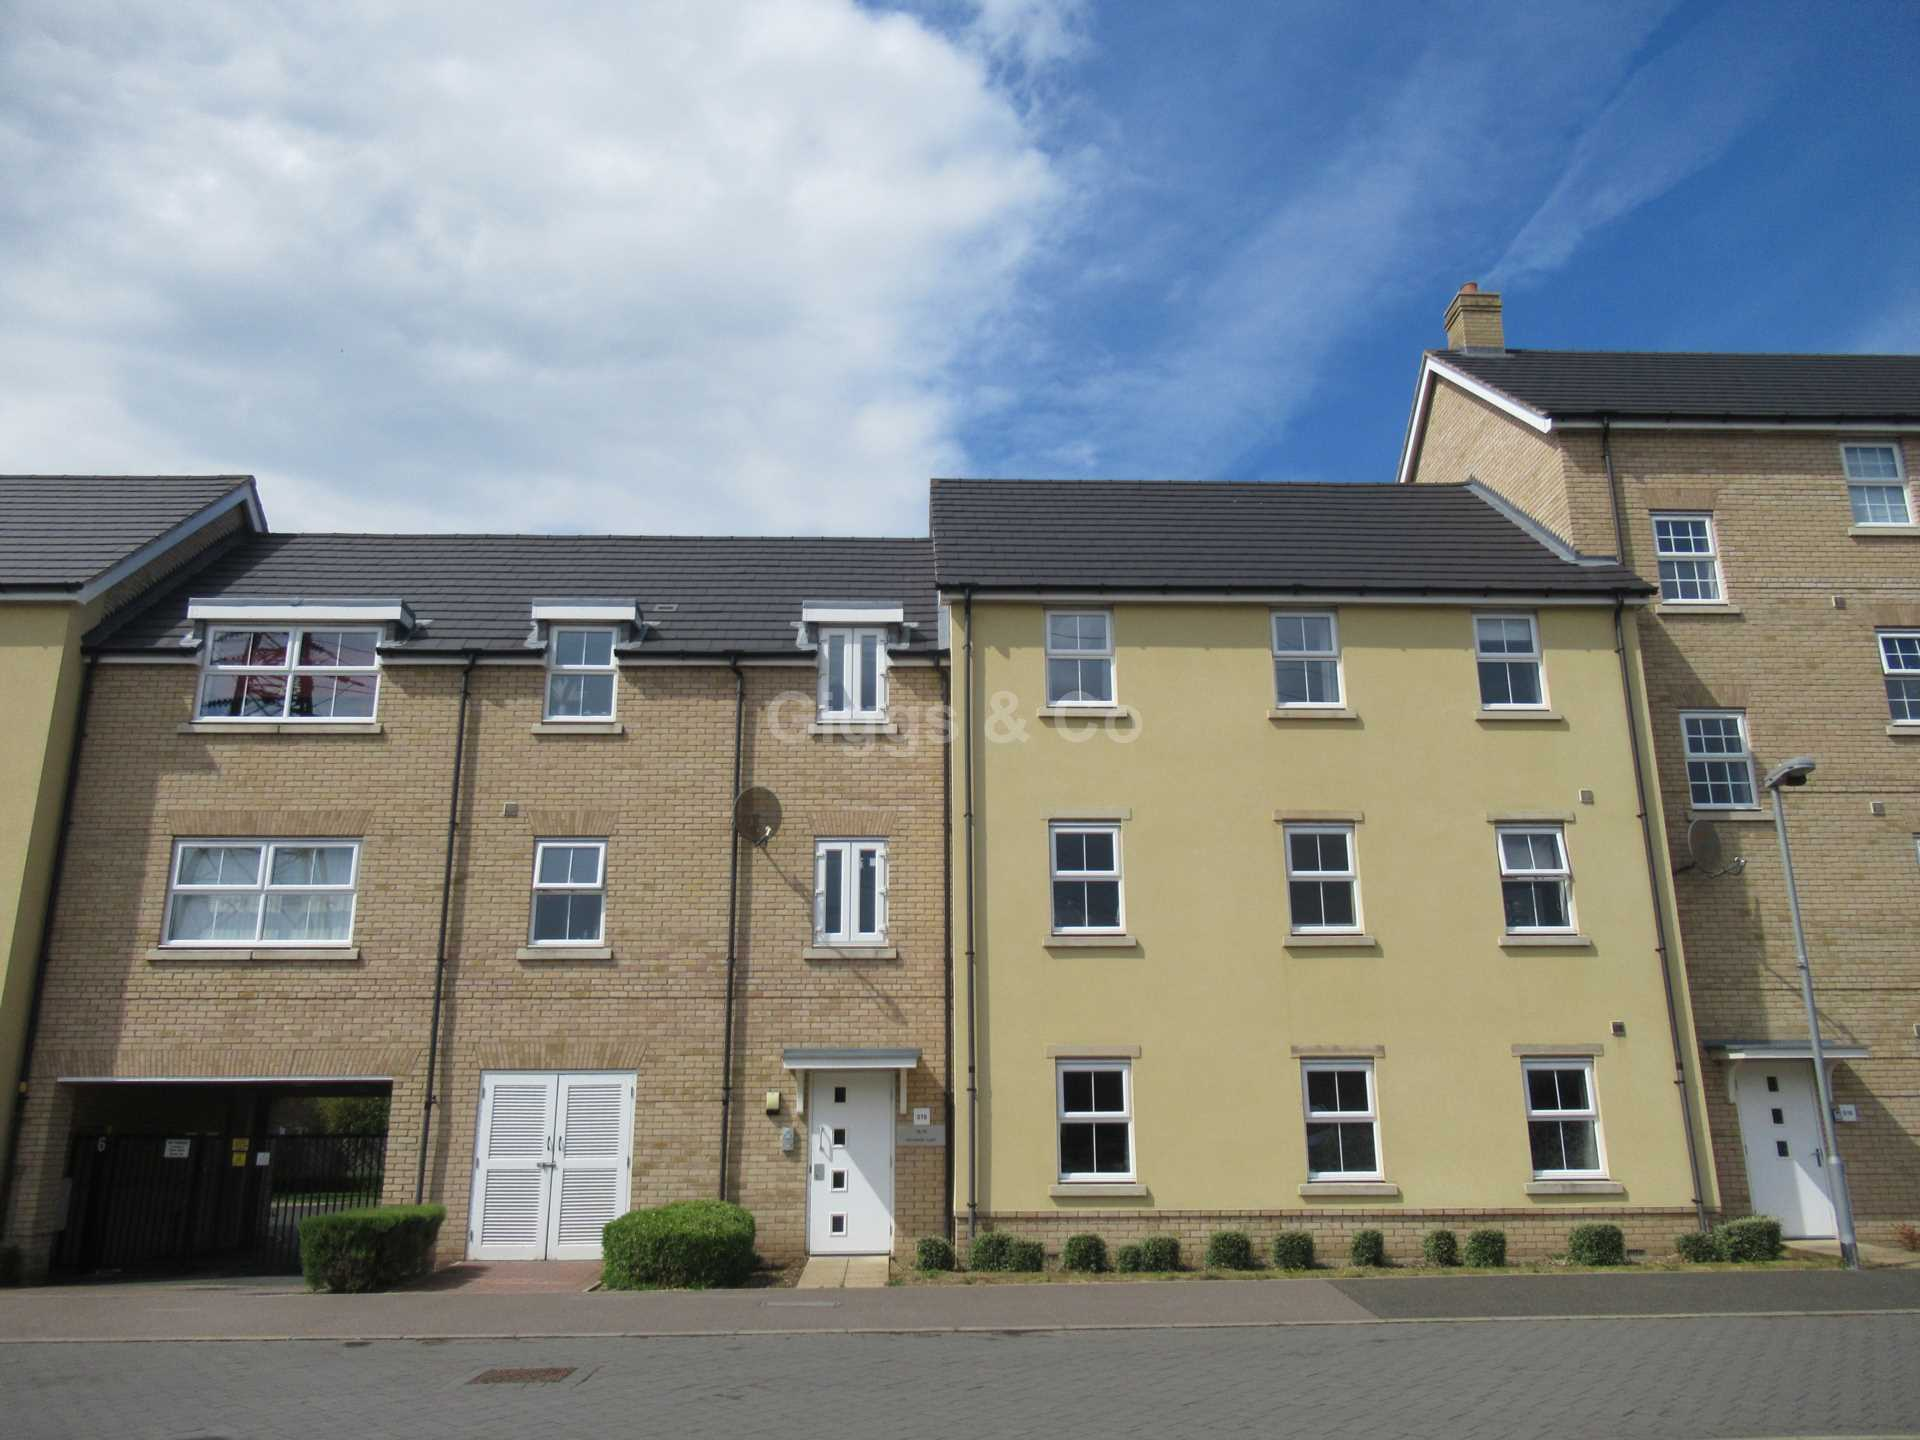 1 bed apartment to rent in Delphinium Court, St Neots, PE19